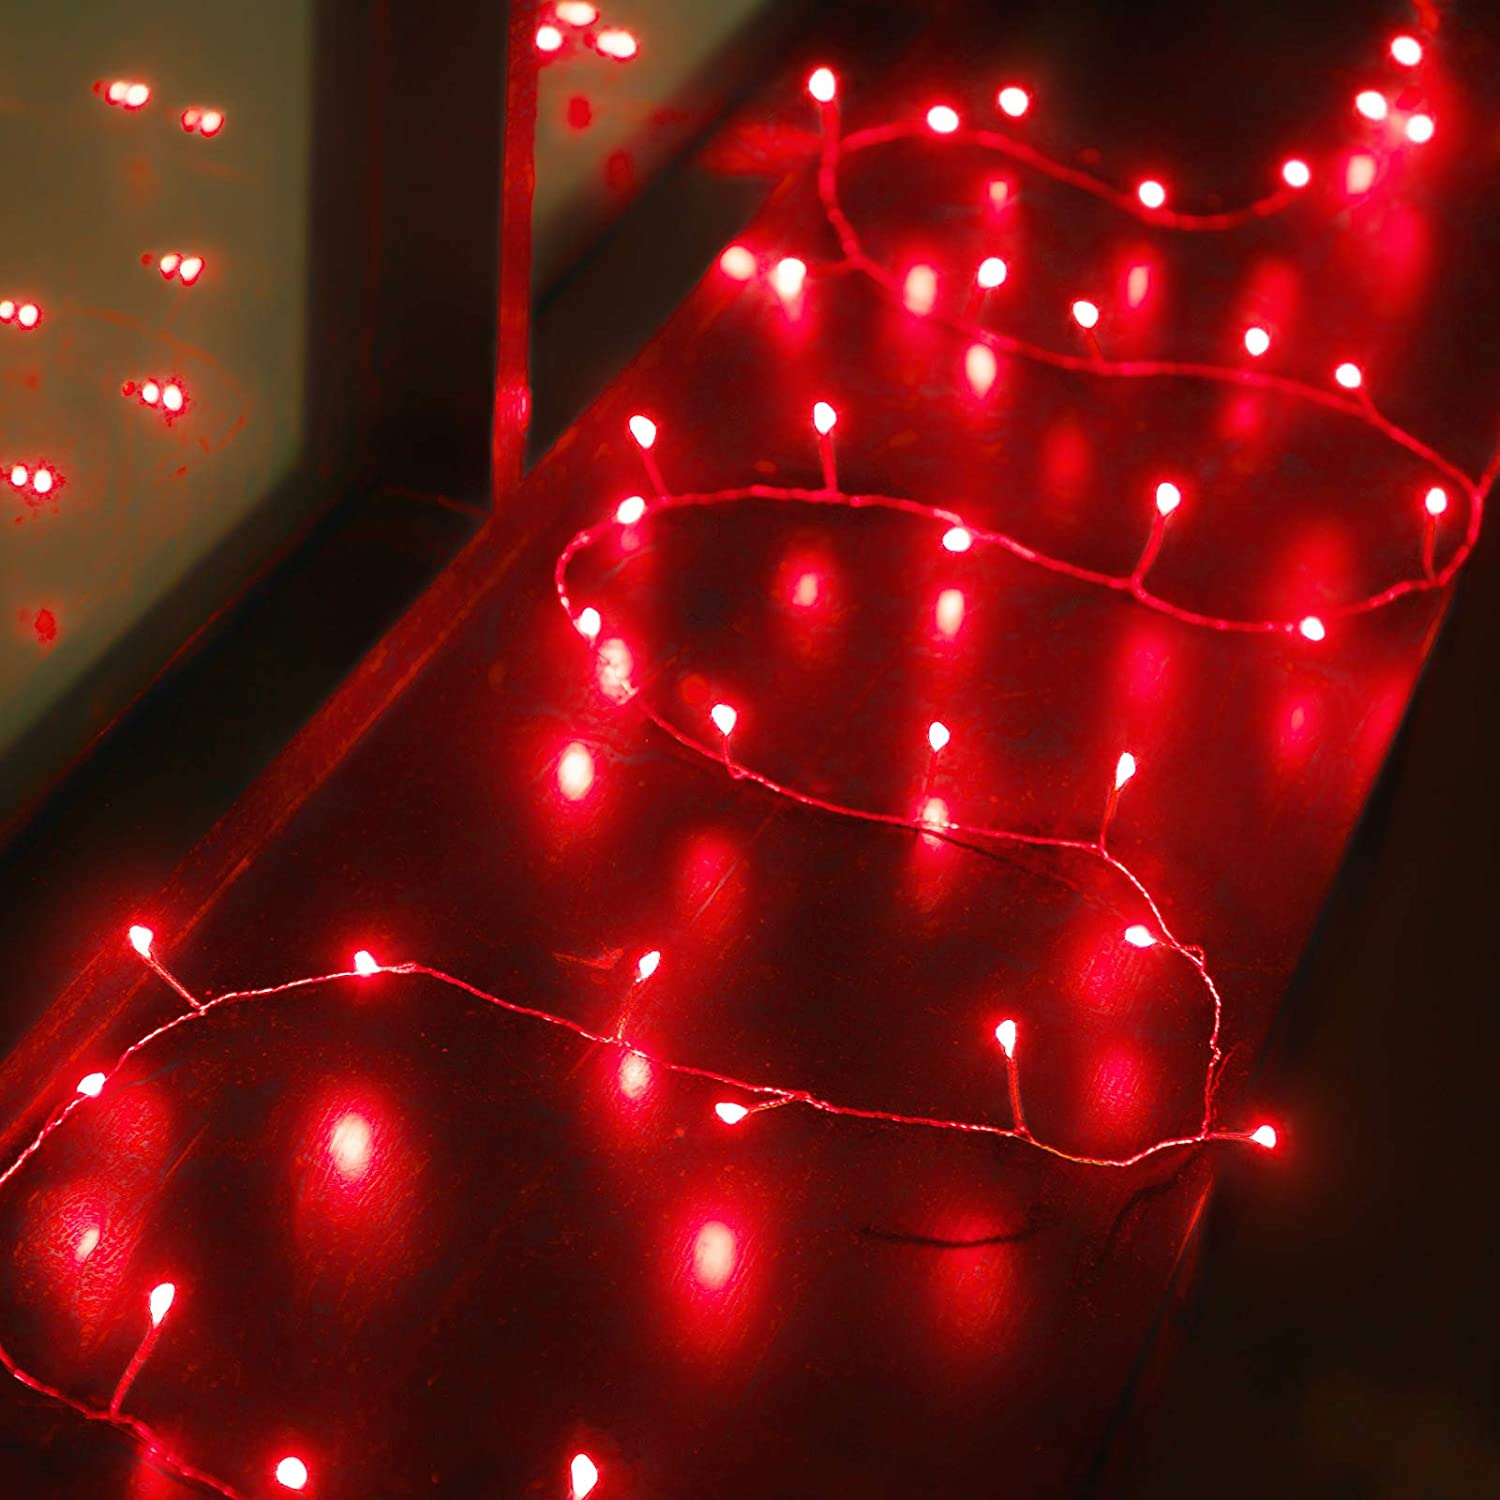 Valentines Fairy String Lights 6.5ft 40 Red LED Firecracker Lights Battery Operated for Valentines Day Wedding Indoor Outdoor Bedroom Garden Party Decoration